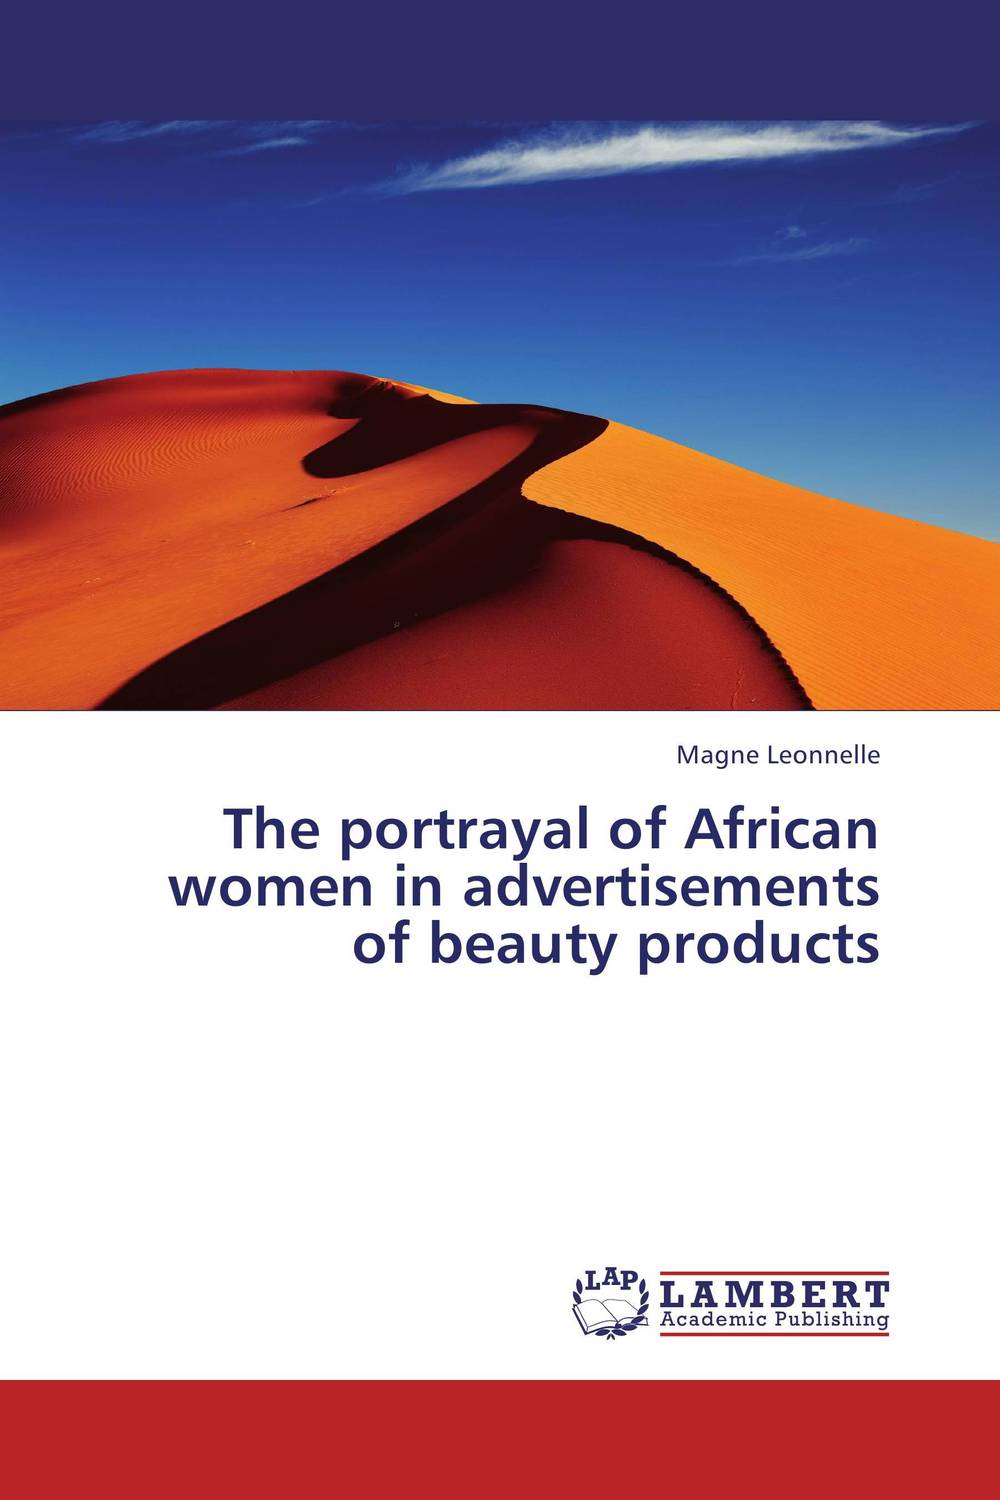 The portrayal of African women in advertisements of beauty products